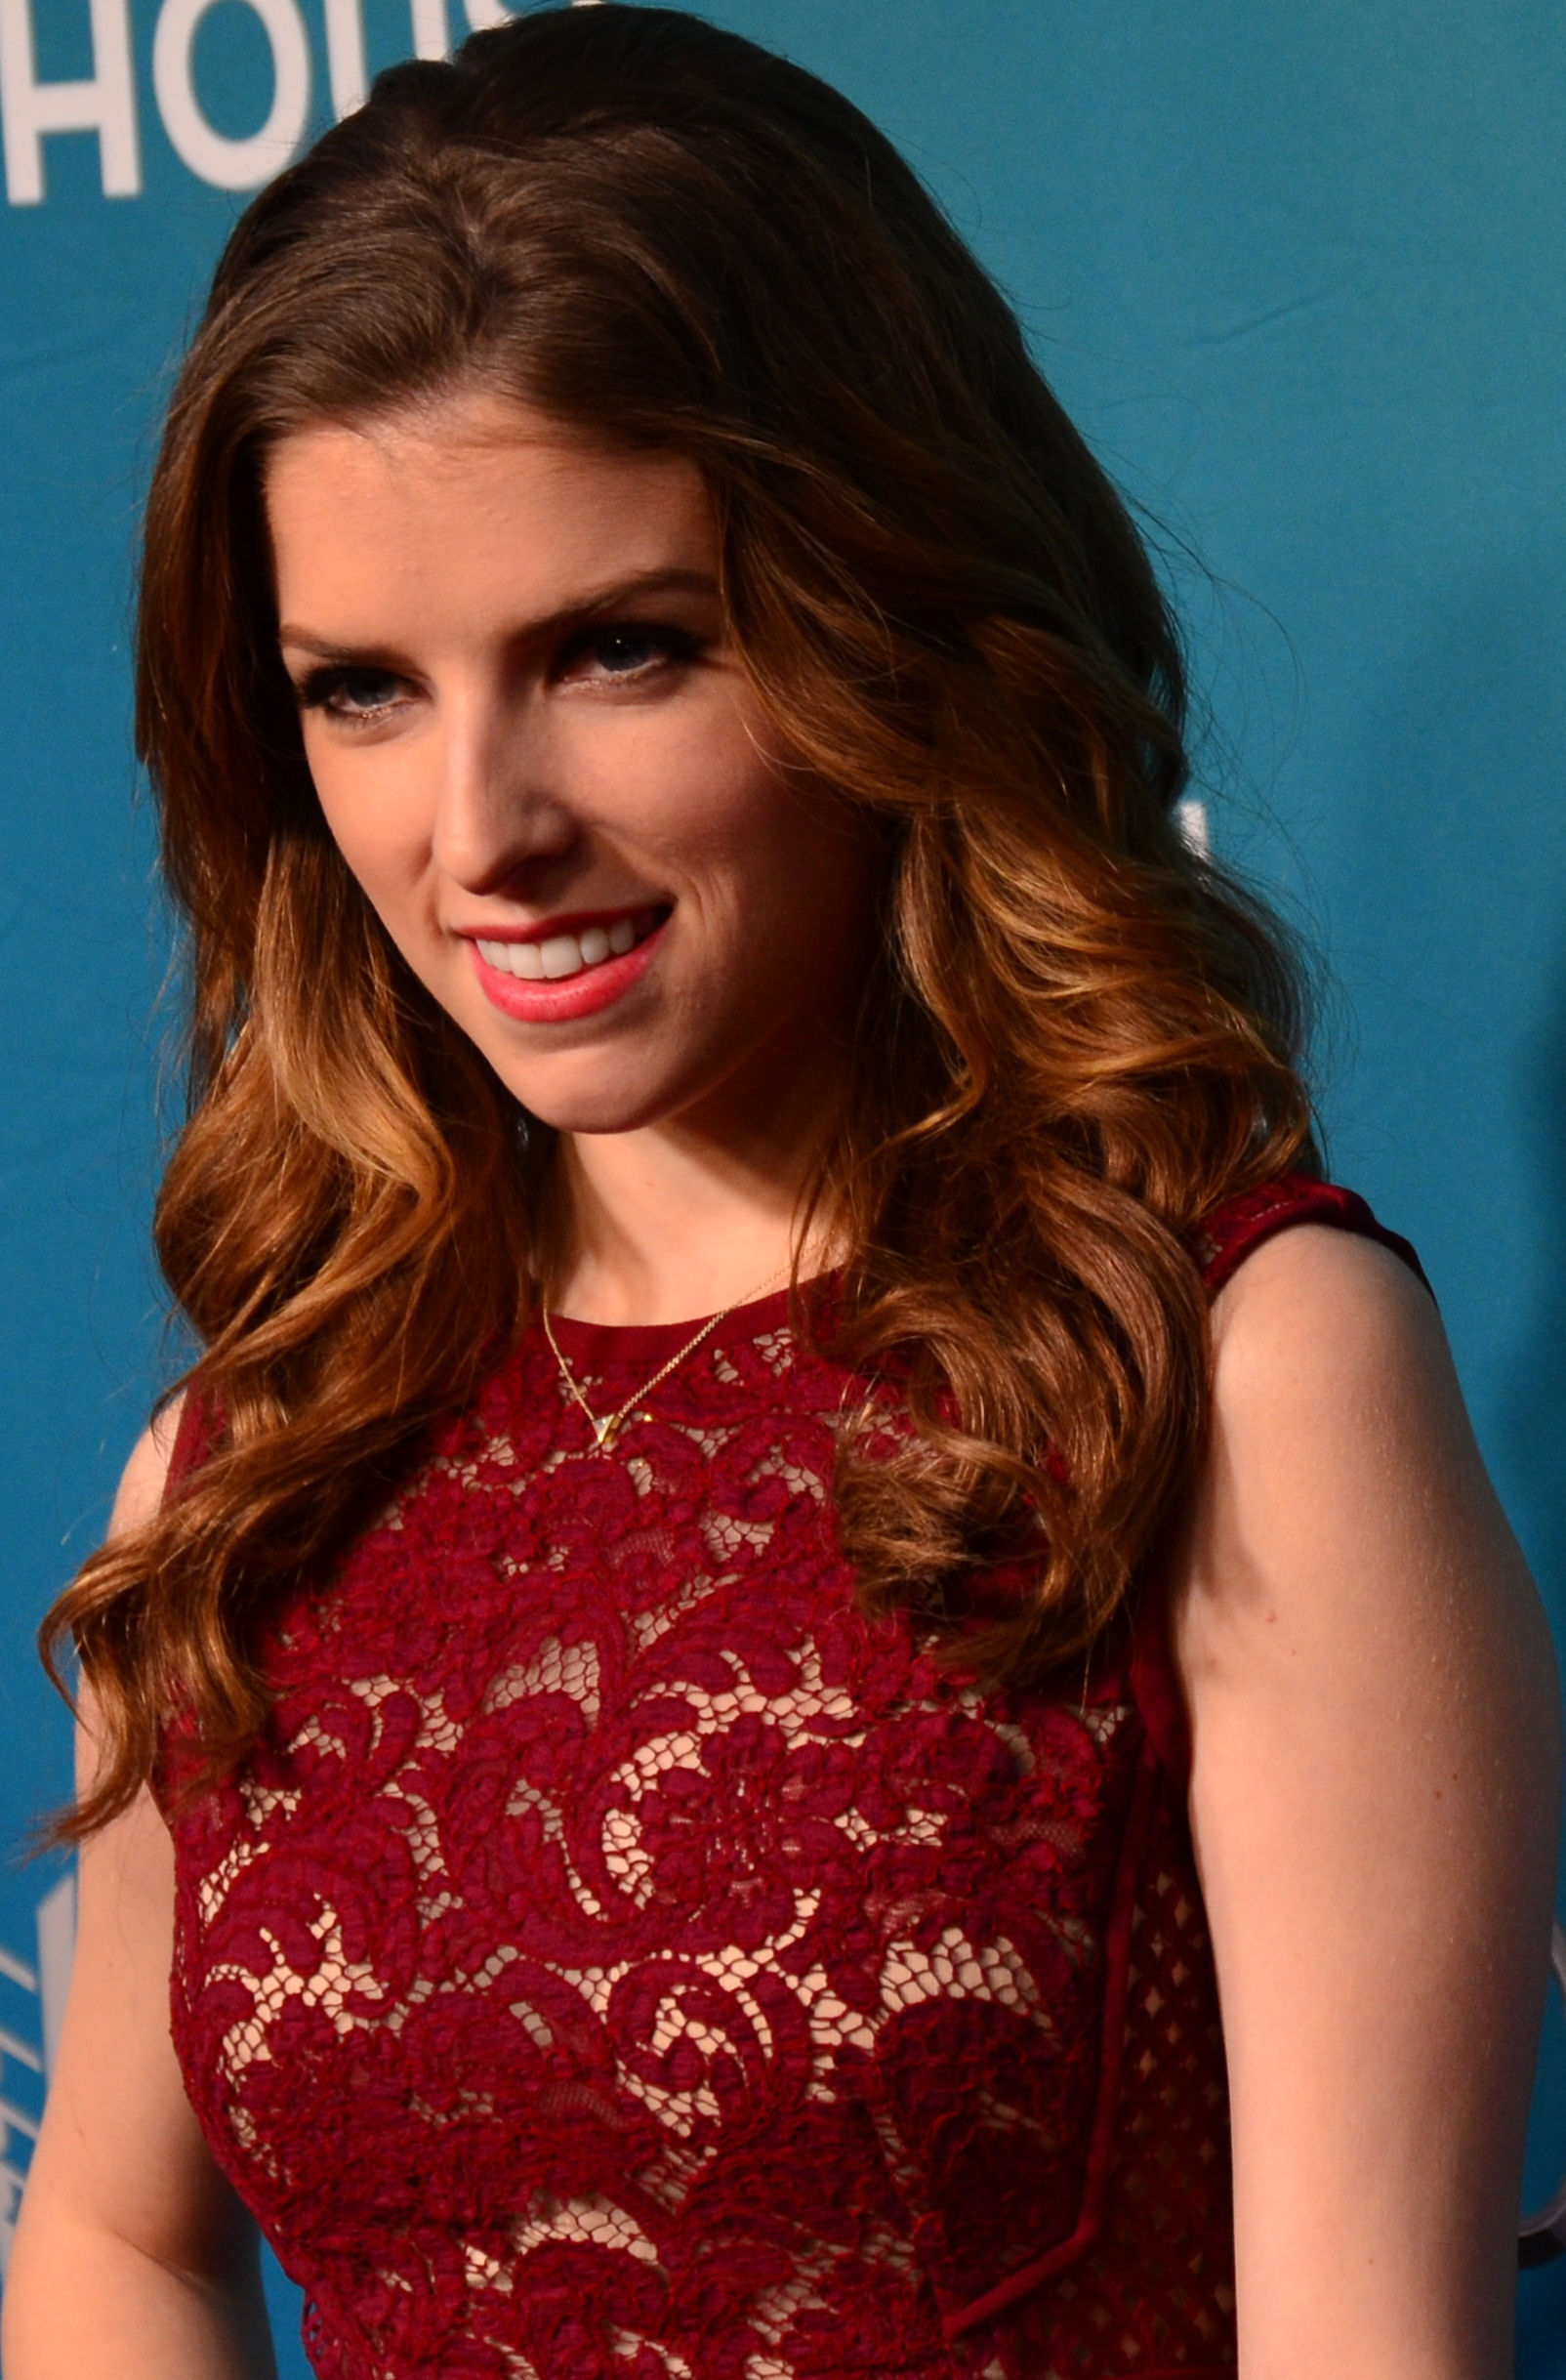 Photo of Anna Kendrick: American actress and singer